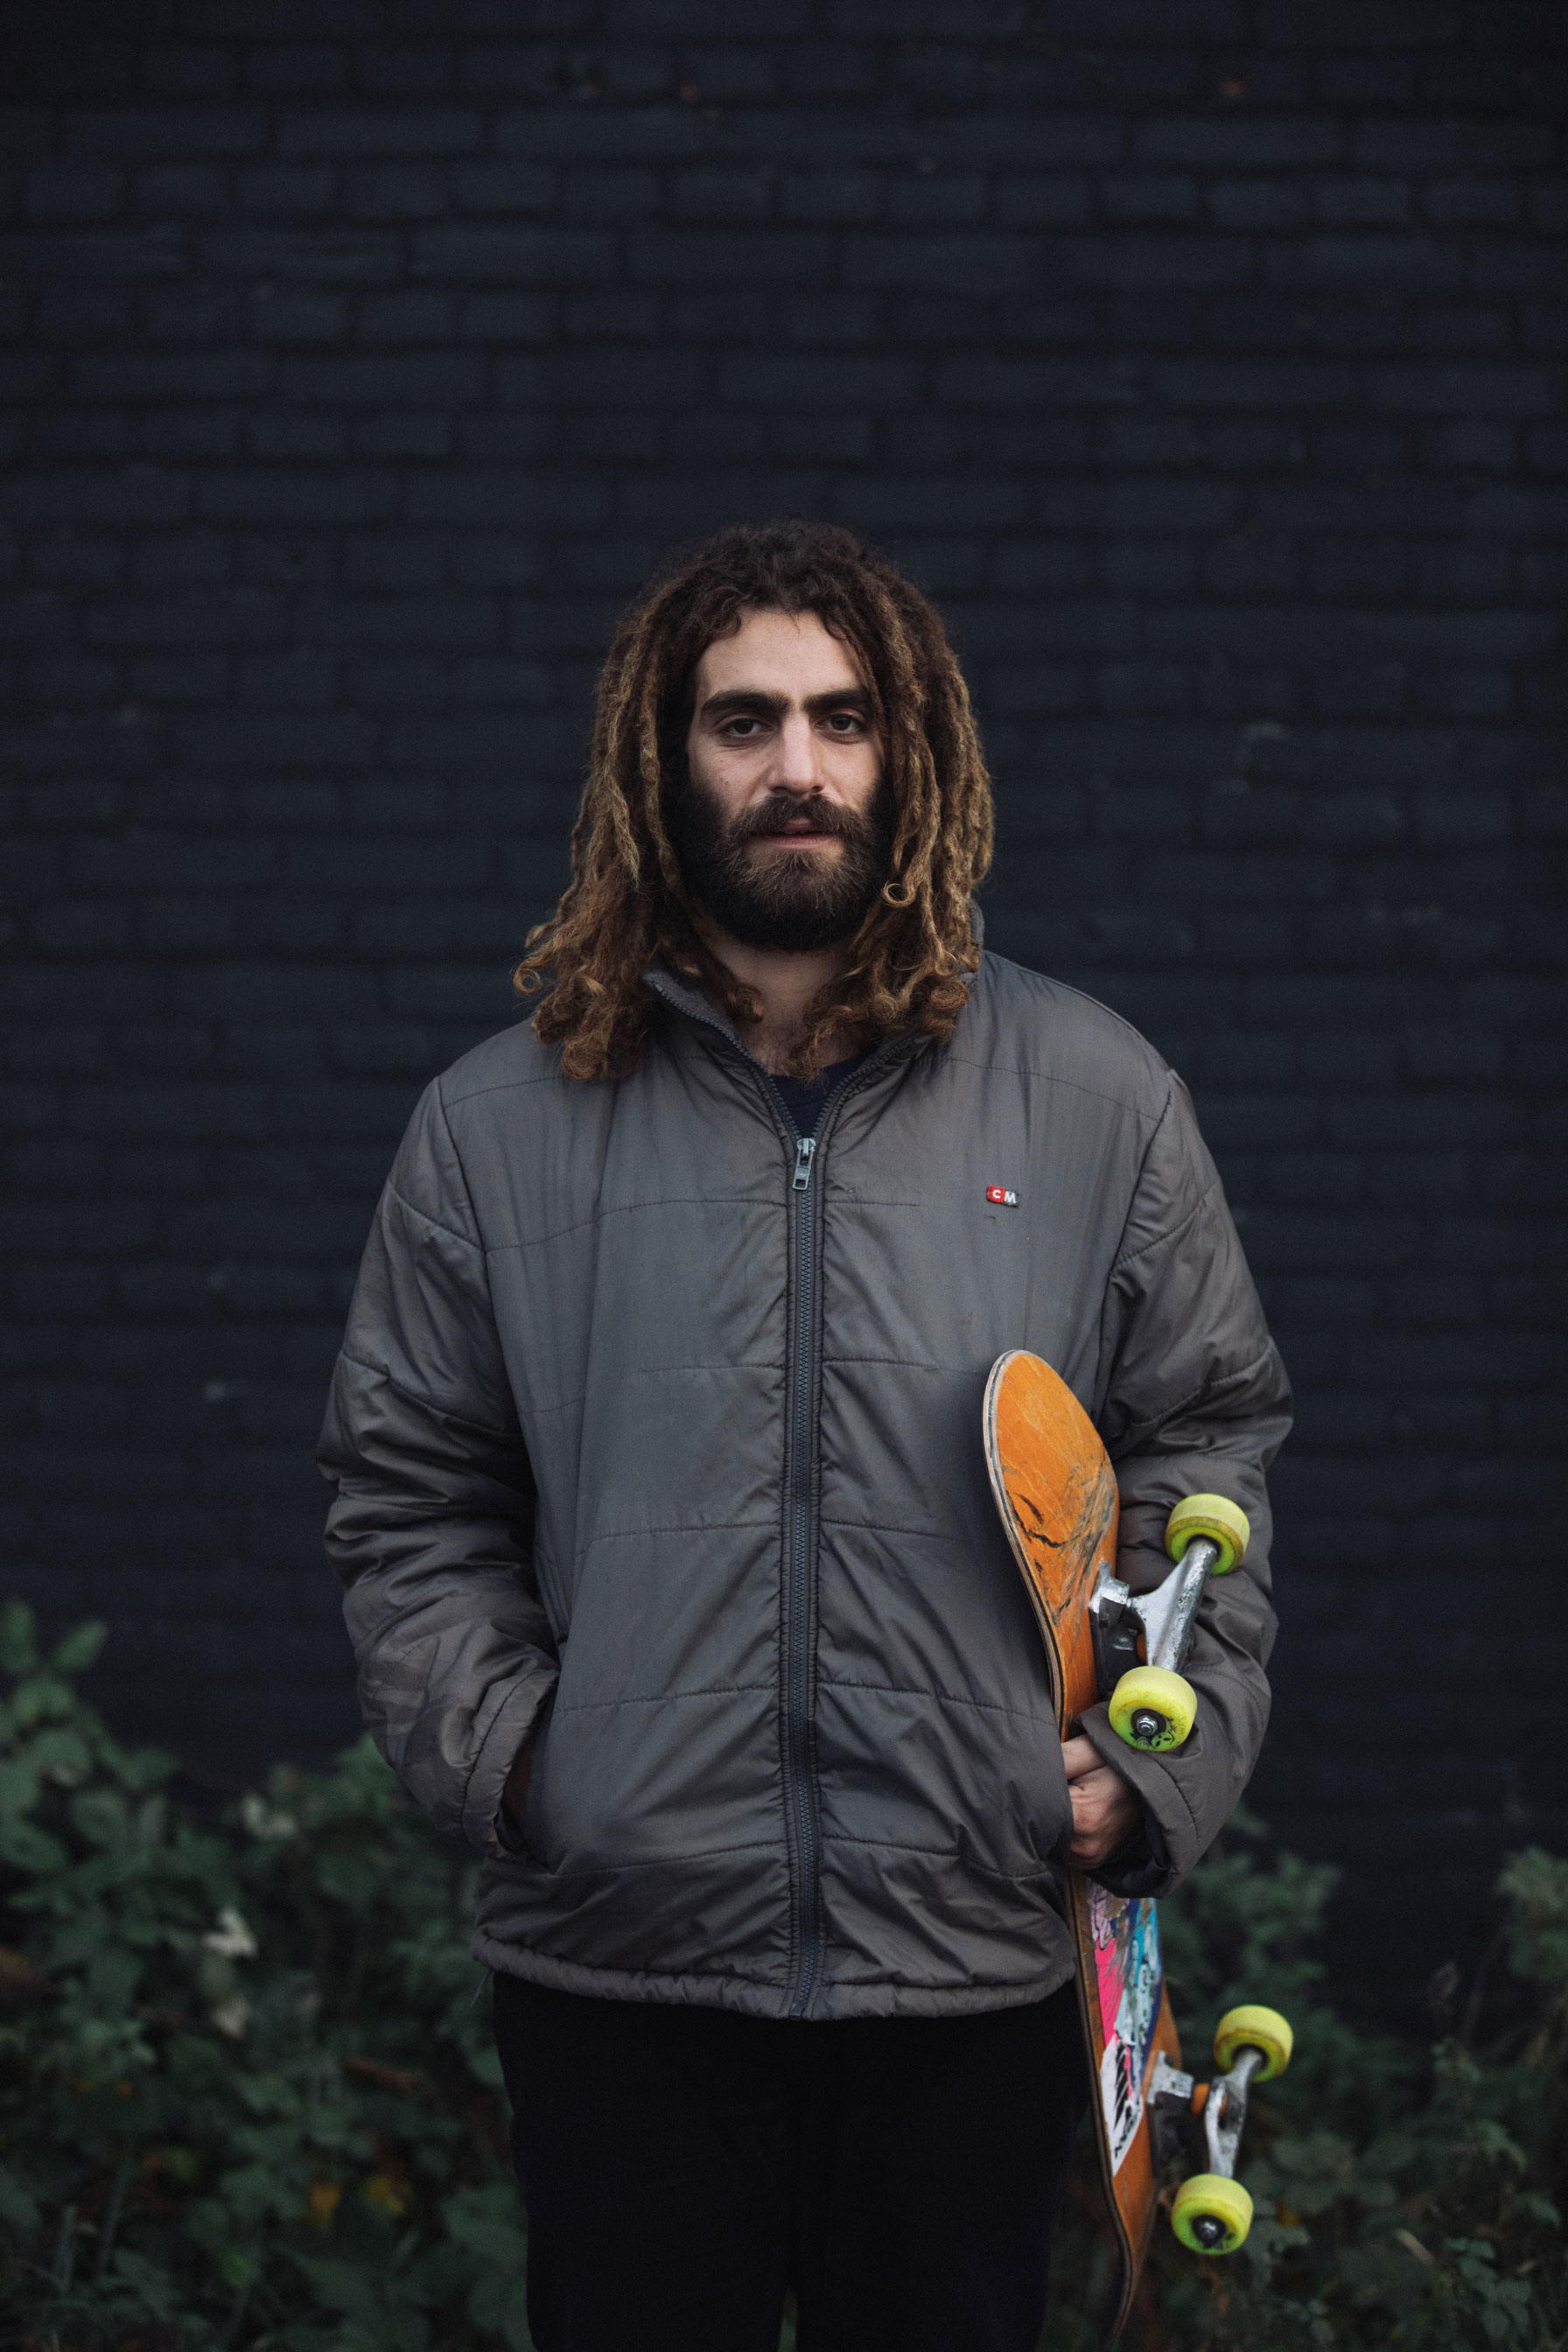 """Itamar Kessler, 25, Gilis (Israel). """"When you introduce yourself to skating, you go to a skate shop, you meet people and that vibe puts an imprint on you. I used to work in a skate shop; if you go to a good one and keep buying there, that gives you a much better education than just buying online."""""""